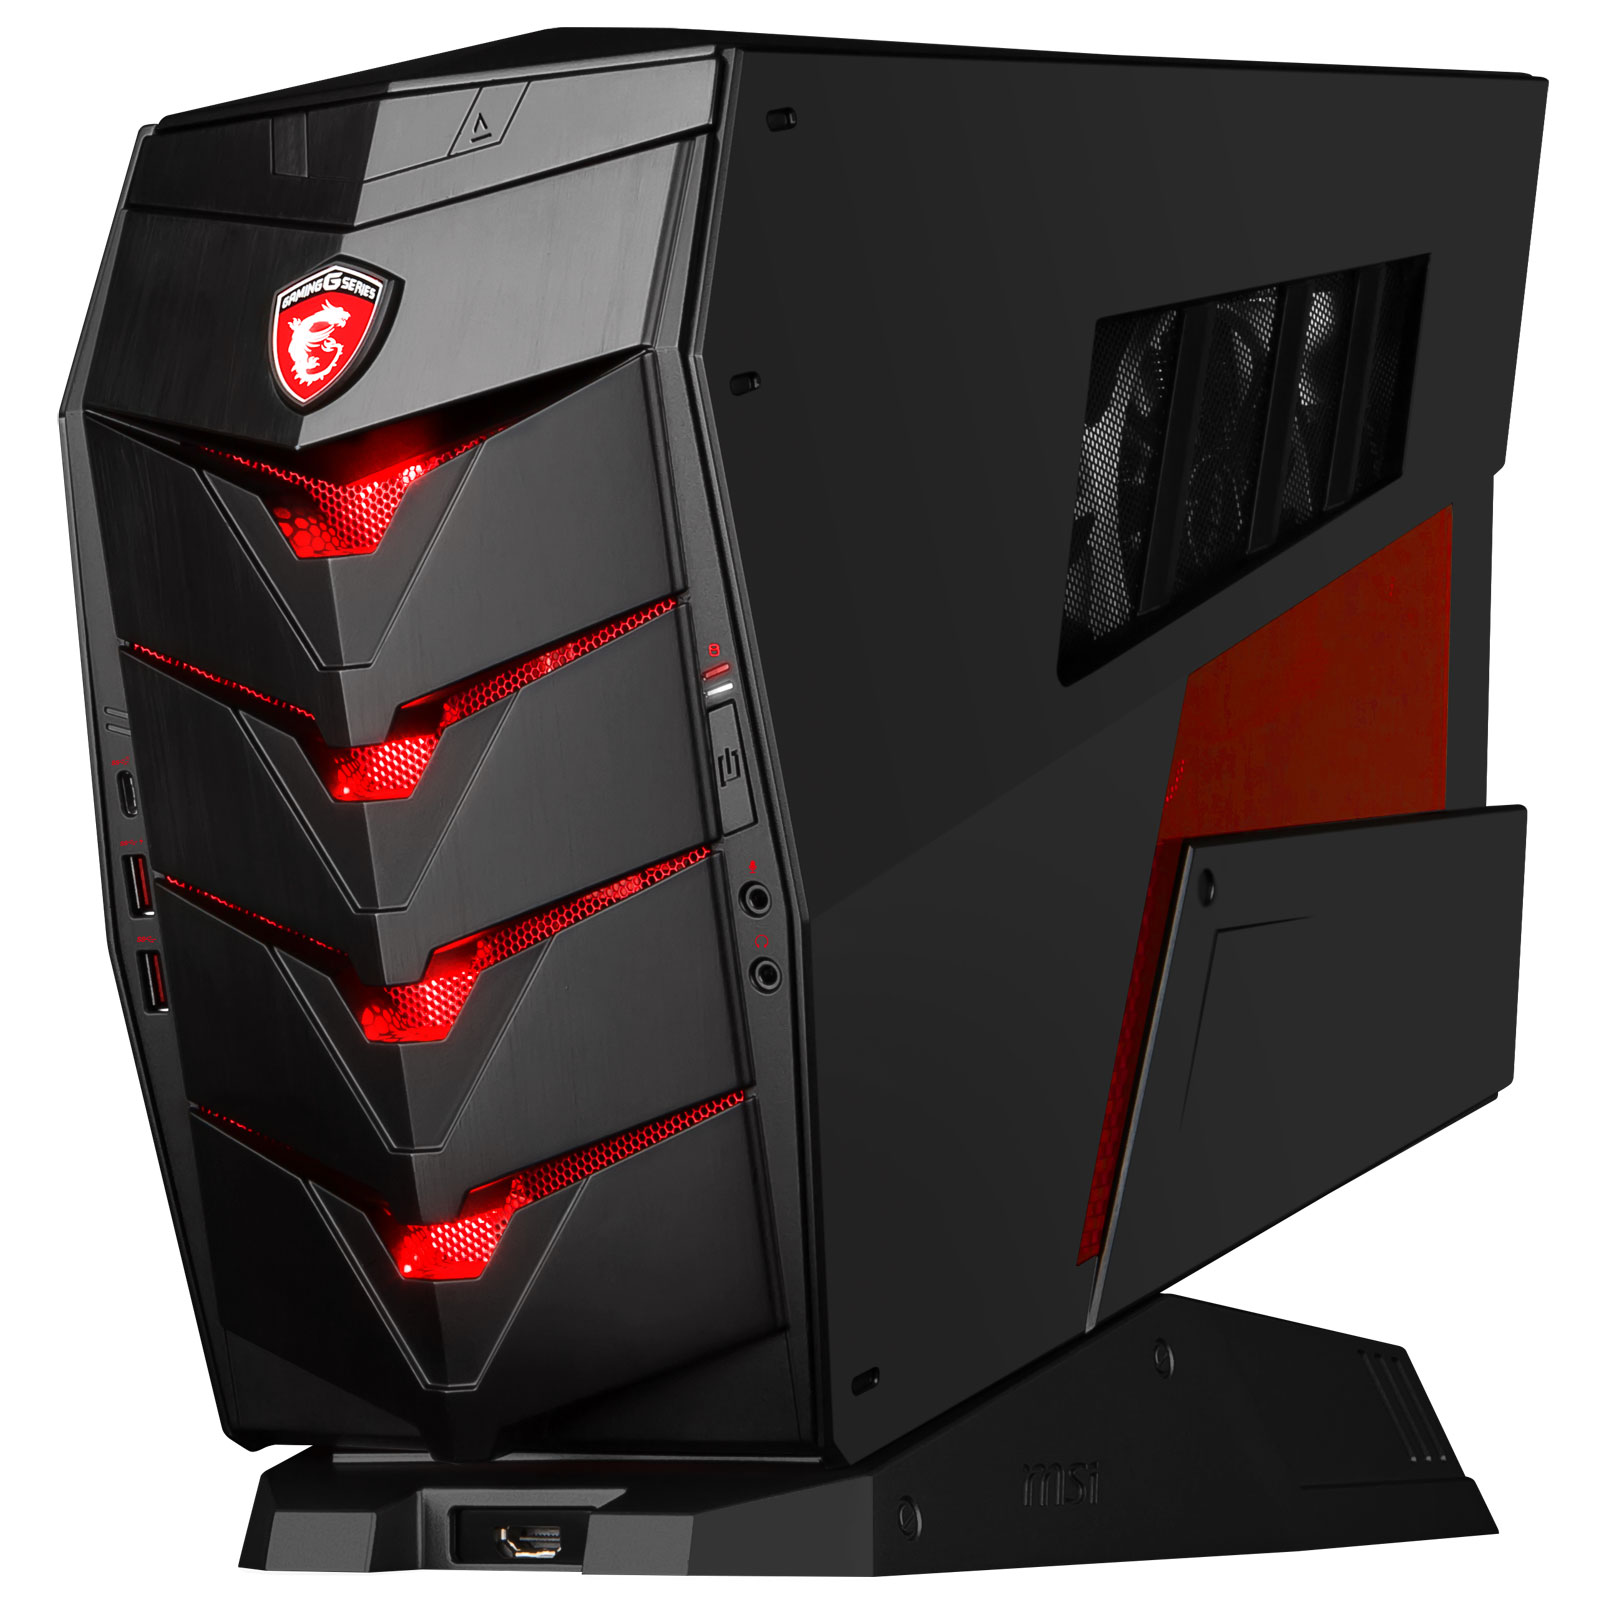 msi aegis x 037eu pc de bureau msi sur. Black Bedroom Furniture Sets. Home Design Ideas